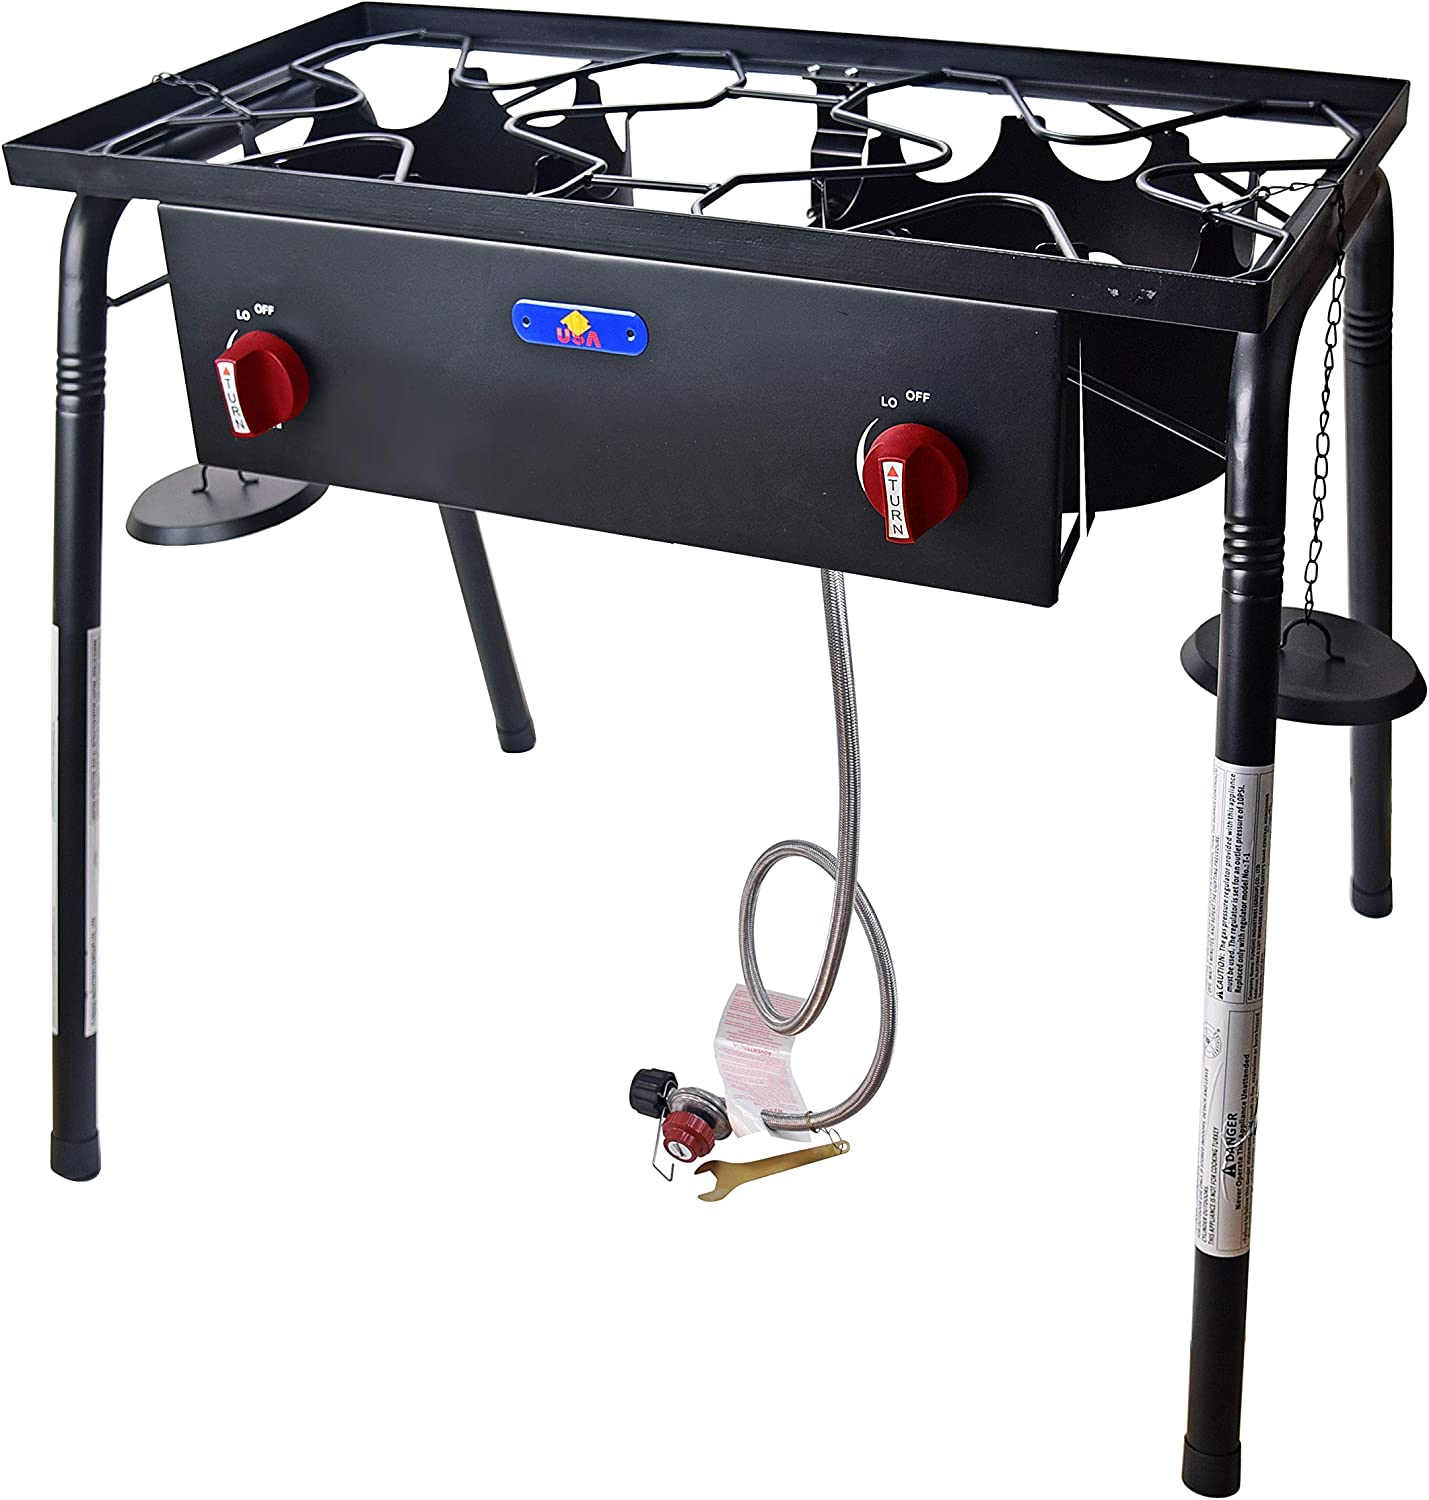 ARC, 7841 CSA Approval Stander Outdoor Burner Assembled, High Pressure Cast Iron Propane Double Burner for Backyard, Portable Gas Cooker, Camping Cooking Stove